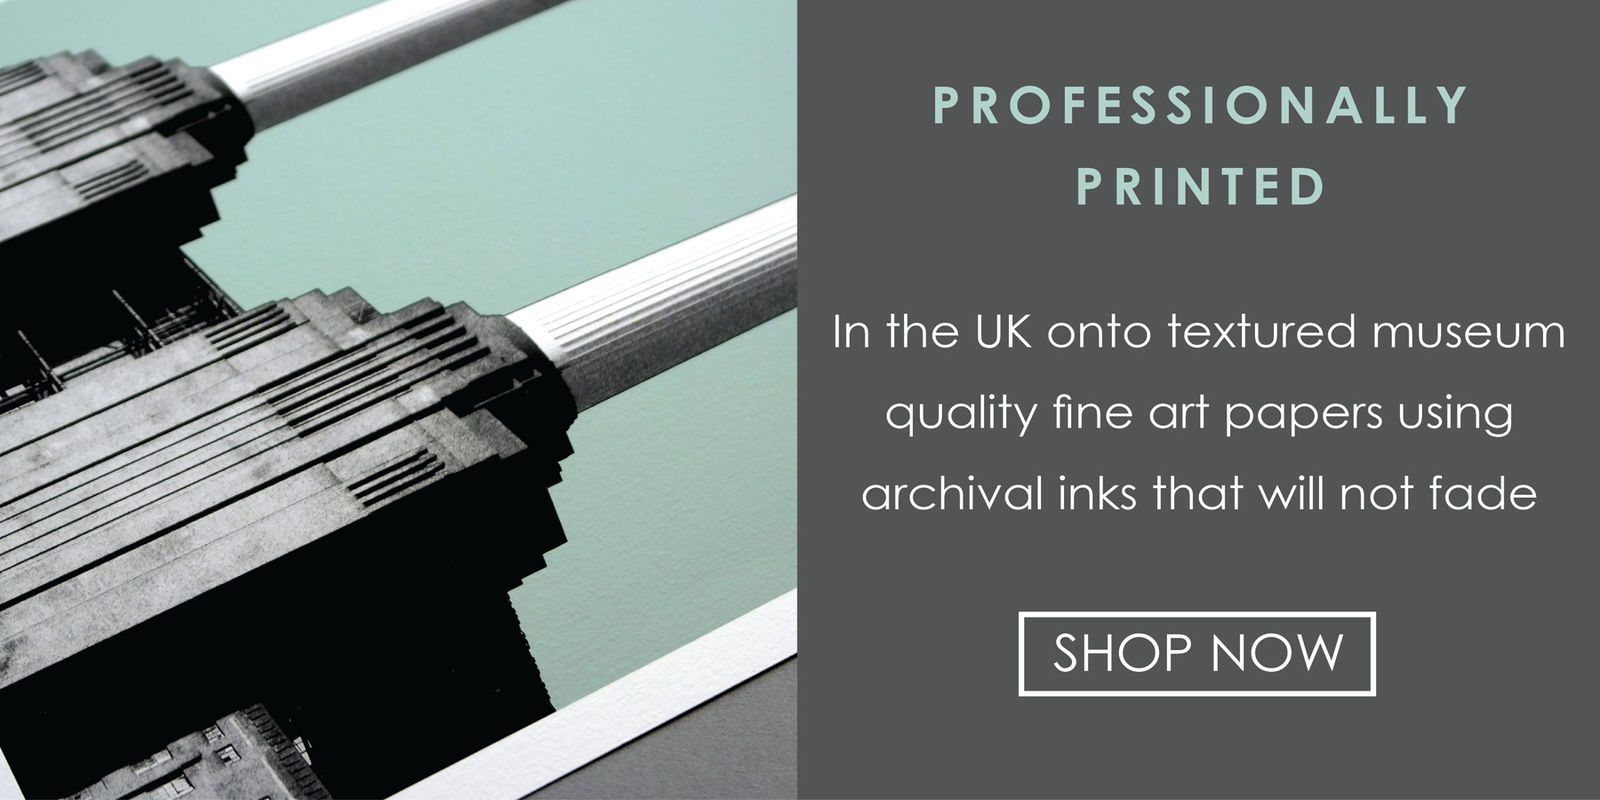 buy-limited-edition-prints-and-art-prints-online-uk